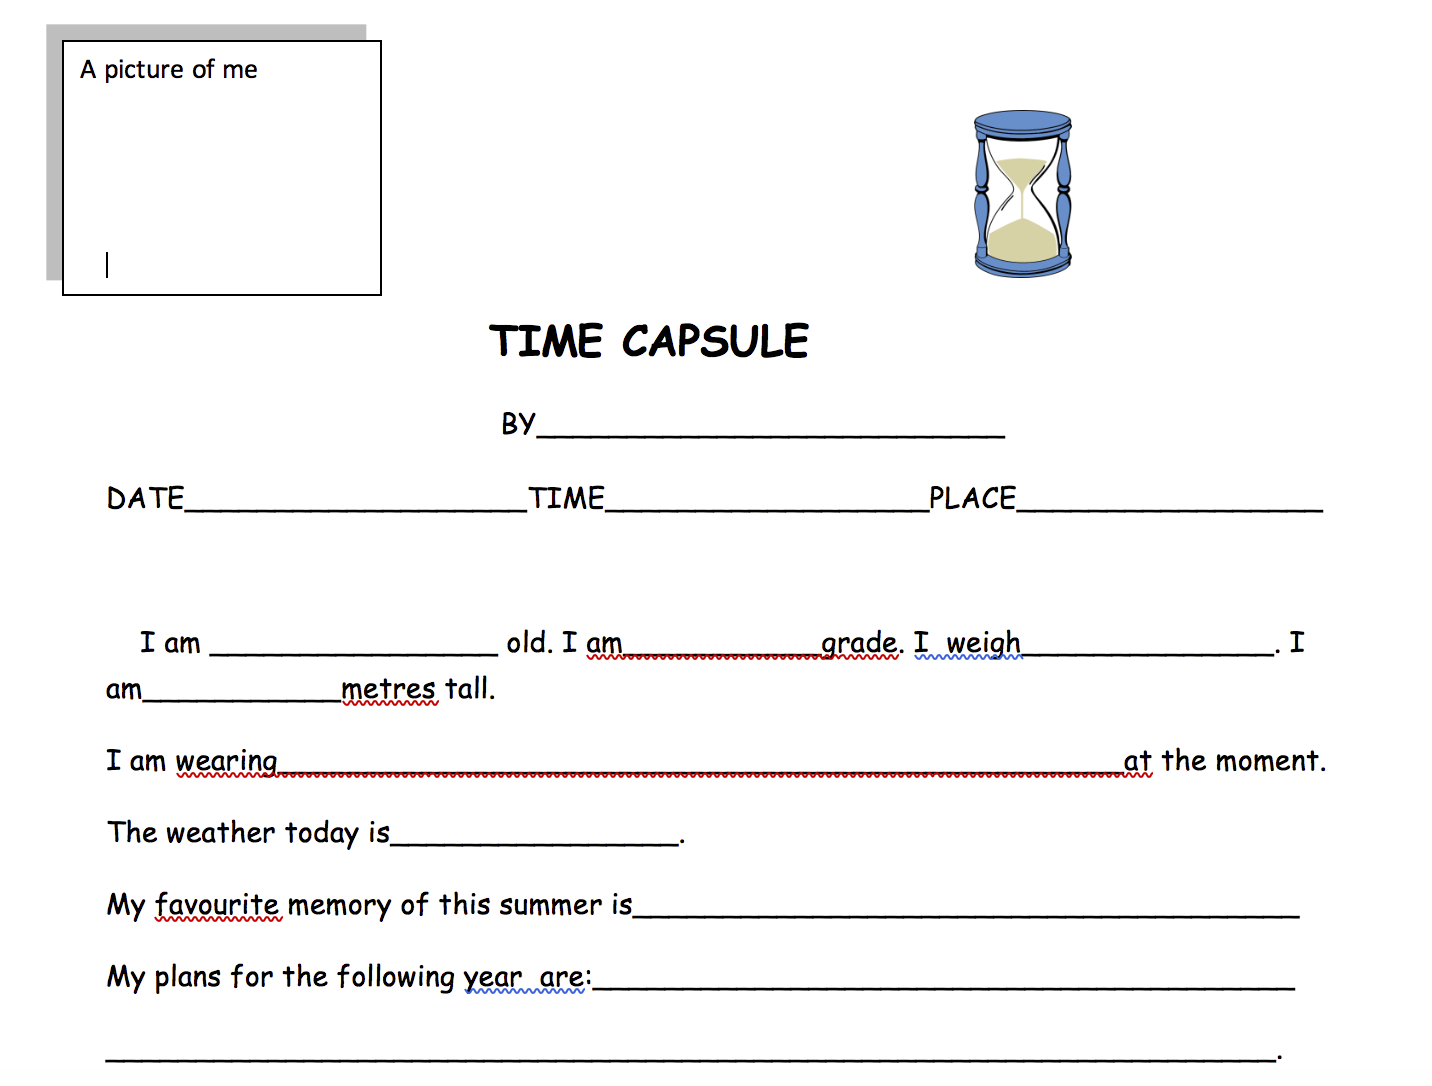 Time Capsule About Me Worksheet